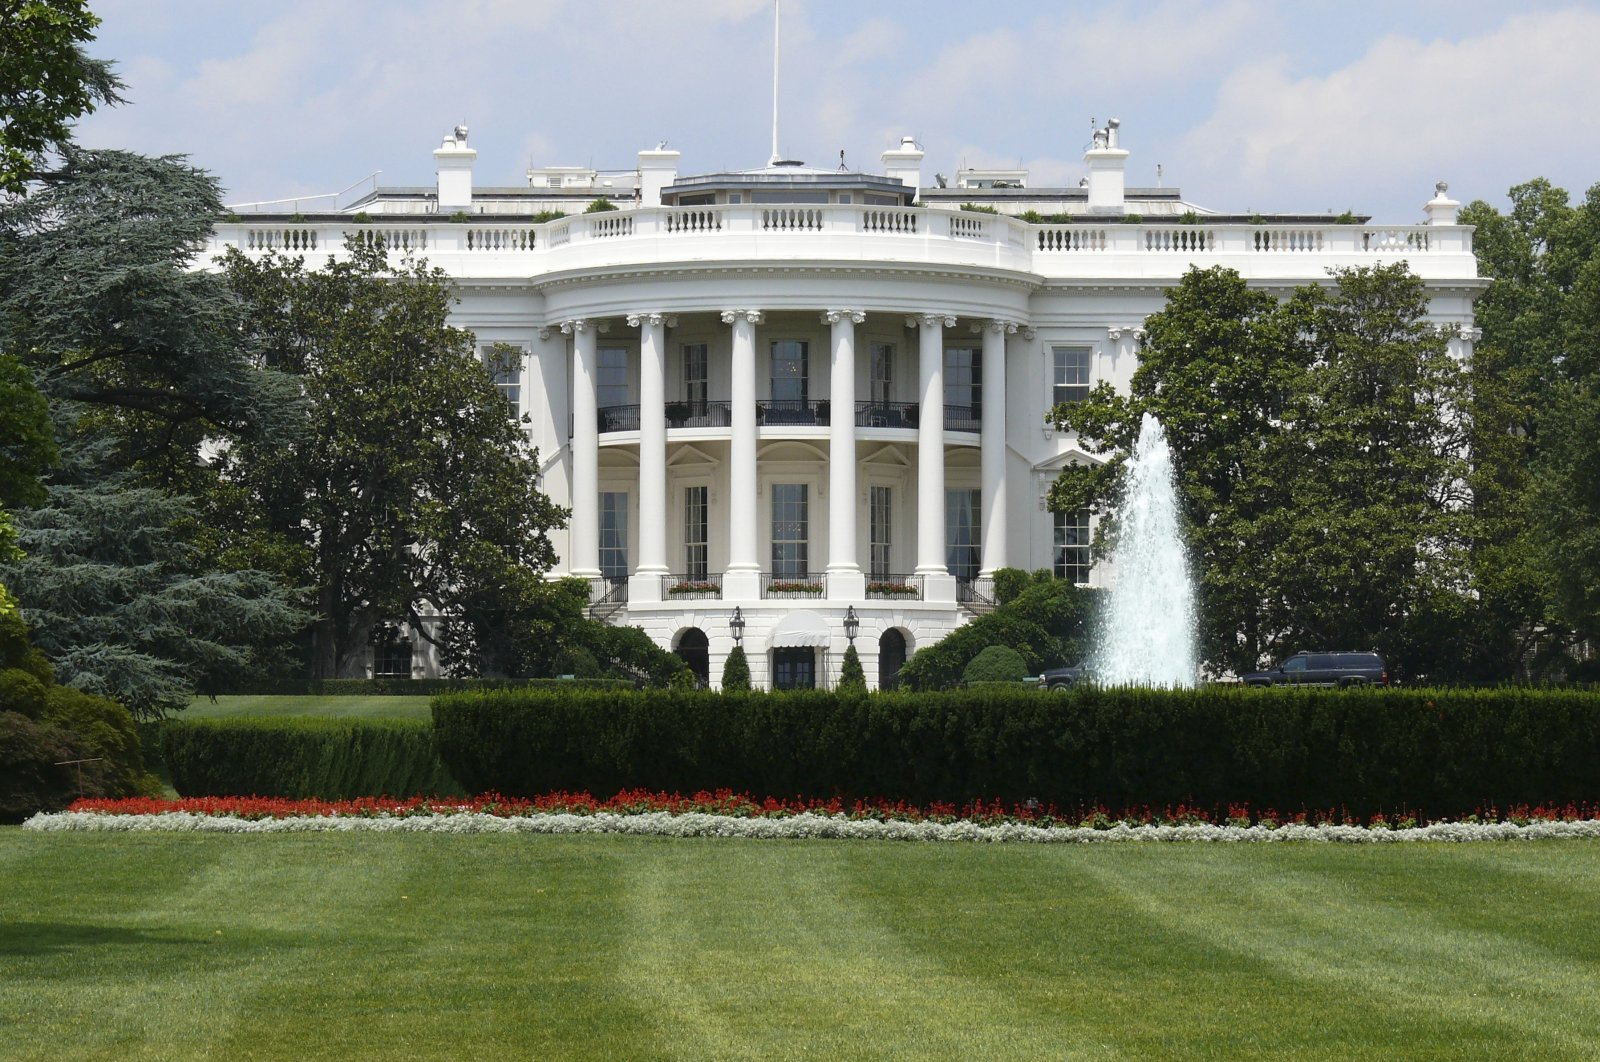 This undated file photo shows a general view of the White House in Washington. (File Photo)